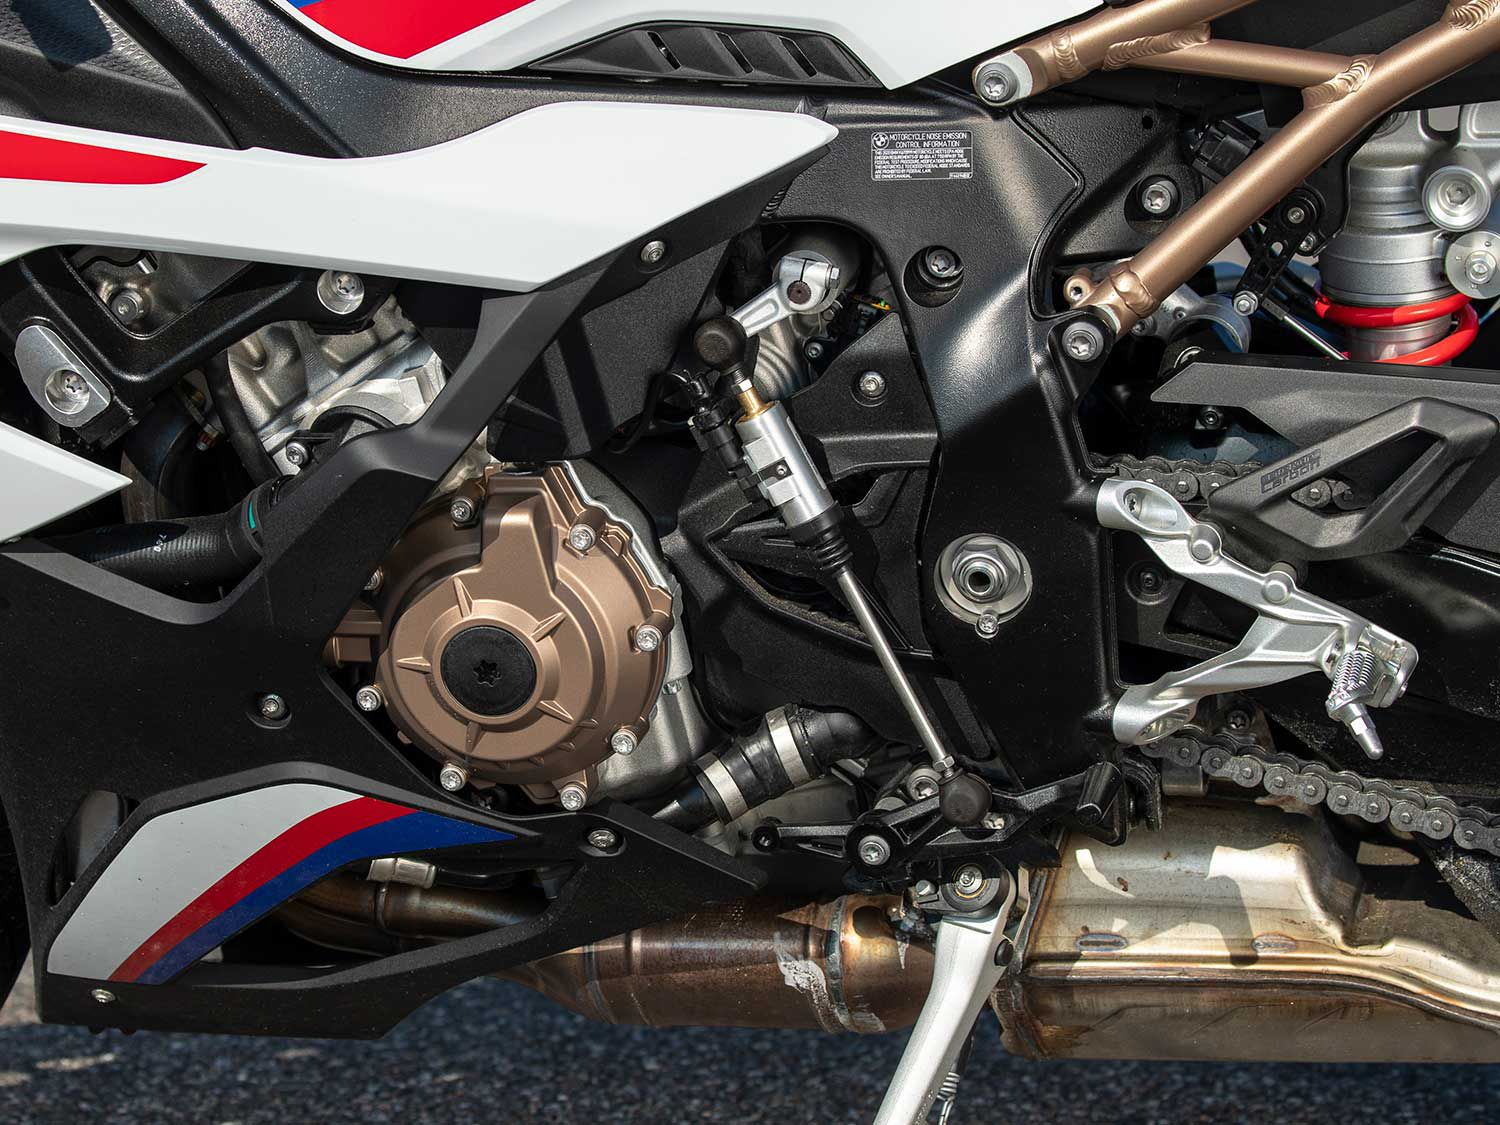 The 999cc inline-four has been completely reengineered. It is not only lighter but more powerful in terms of horsepower.